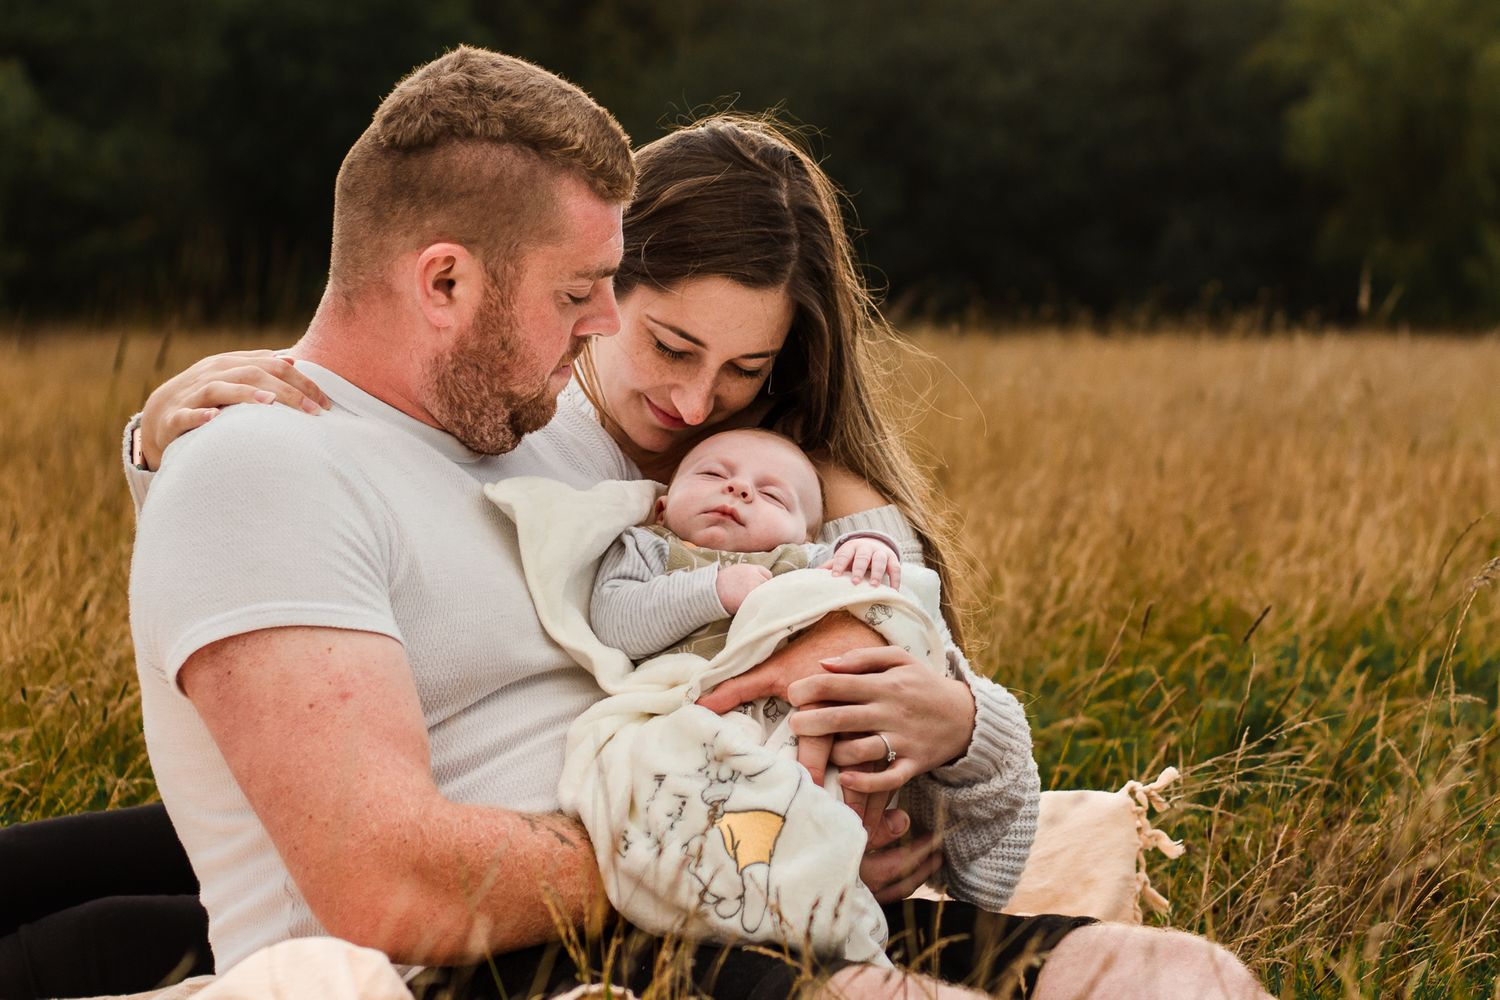 In a field in Havant new parents sit in the long grass snuggling their newborn baby boy.